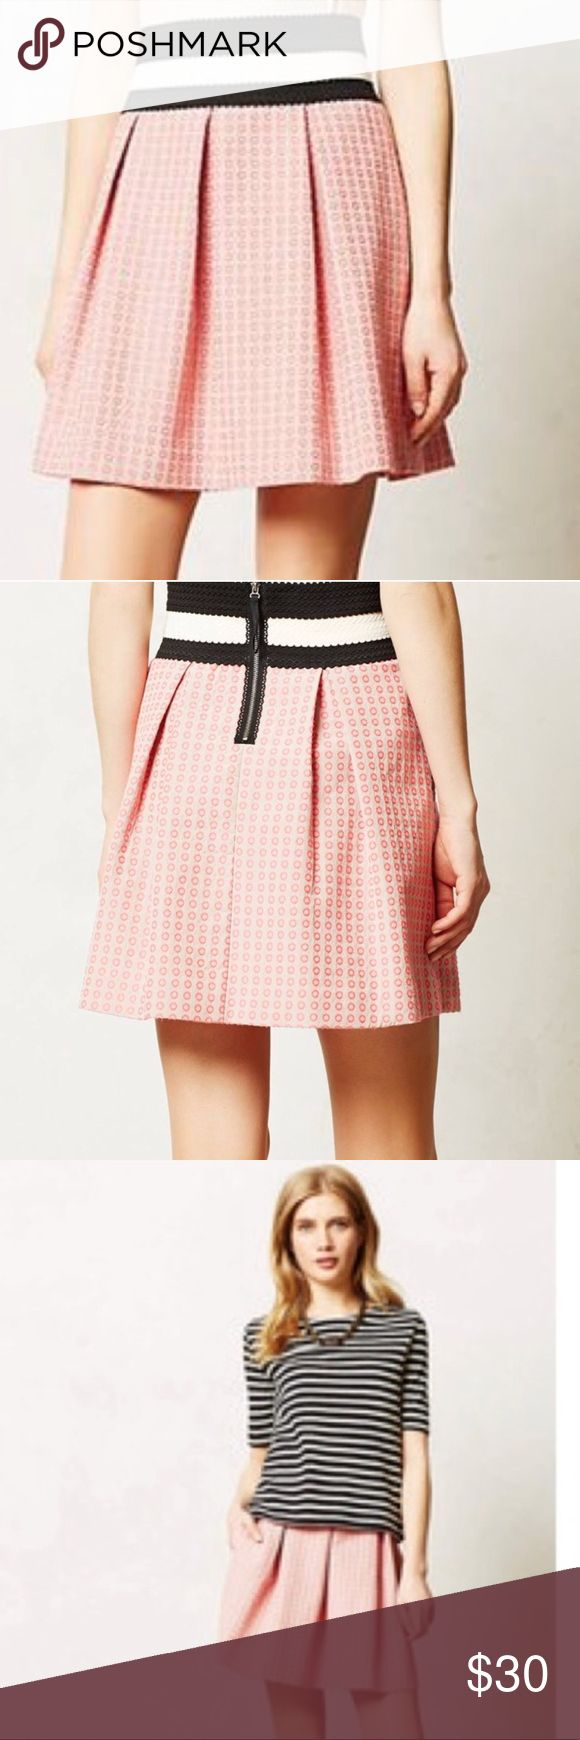 """Anthropologie Maeve Seren Skirt Anthropologie Maeve Seren Skirt. In perfect condition. Maeve's swingy jacquard skirt is perfectly preppy with a chambray buttondown and oxfords.  Back zip Polyester, cotton, elastane Machine wash Regular: 19""""L Anthropologie Skirts Mini"""